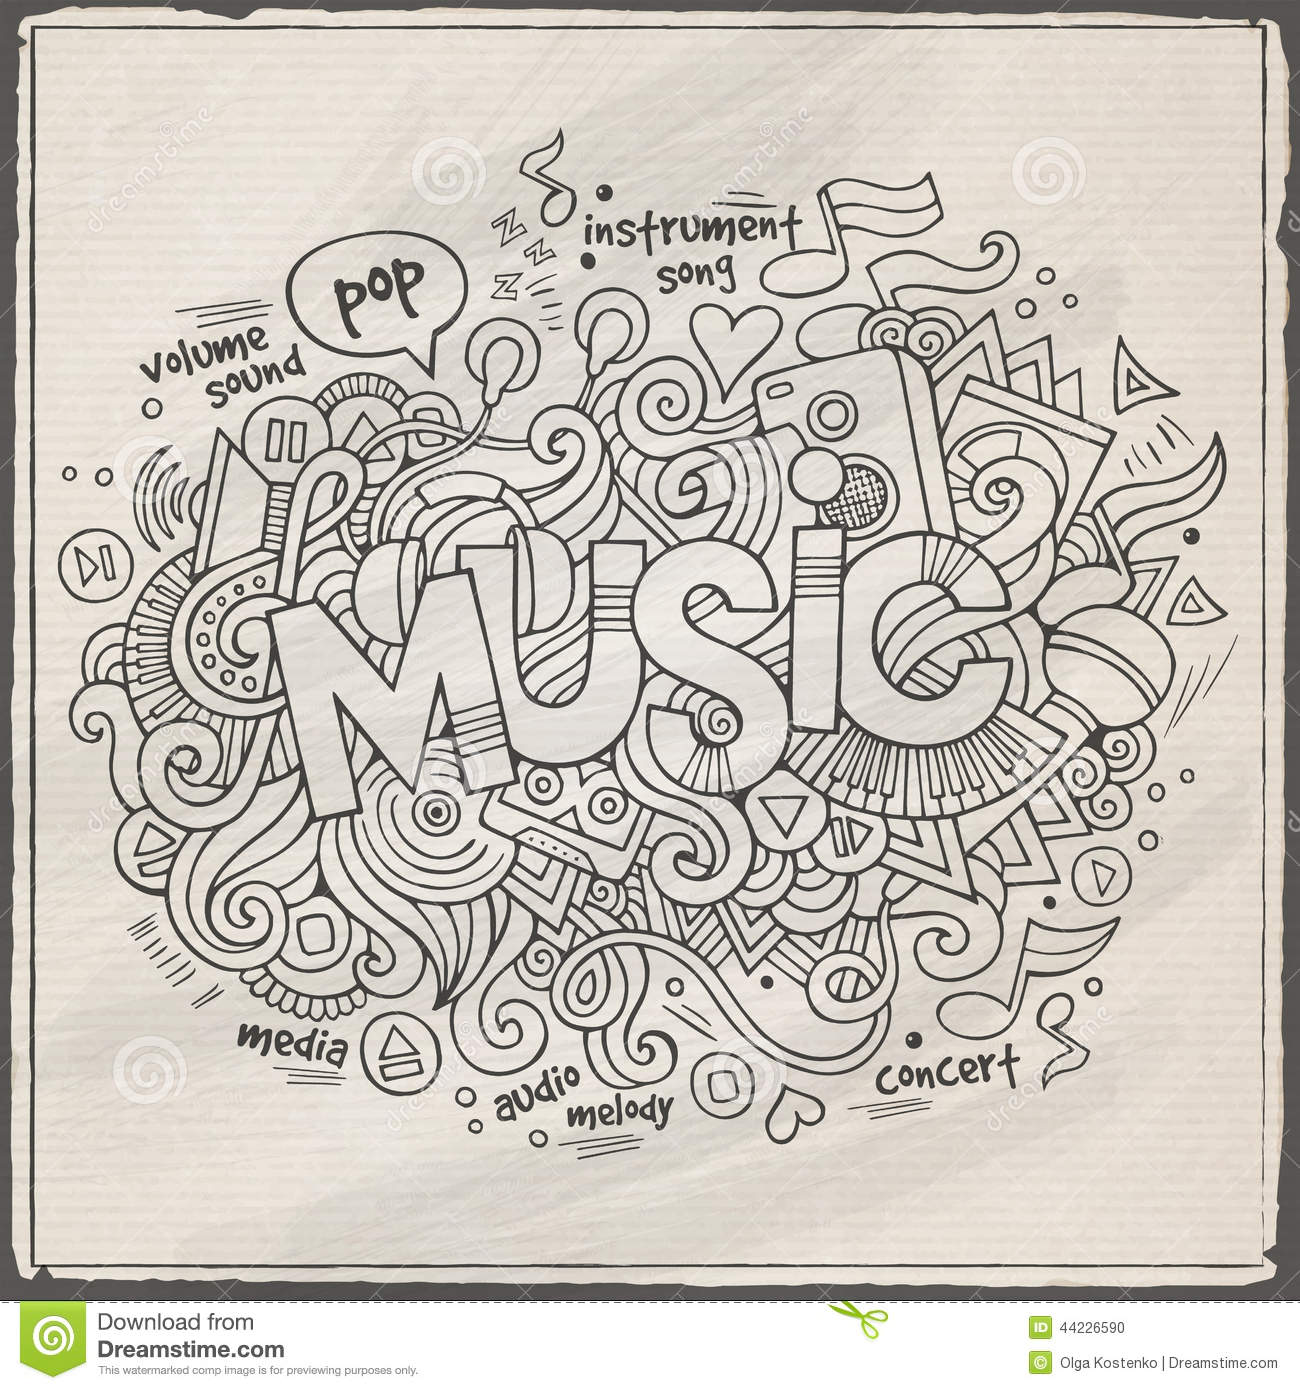 Stock vector music hand lettering and doodles elements - Royalty Free Vector Background Doodles Elements Lettering Music